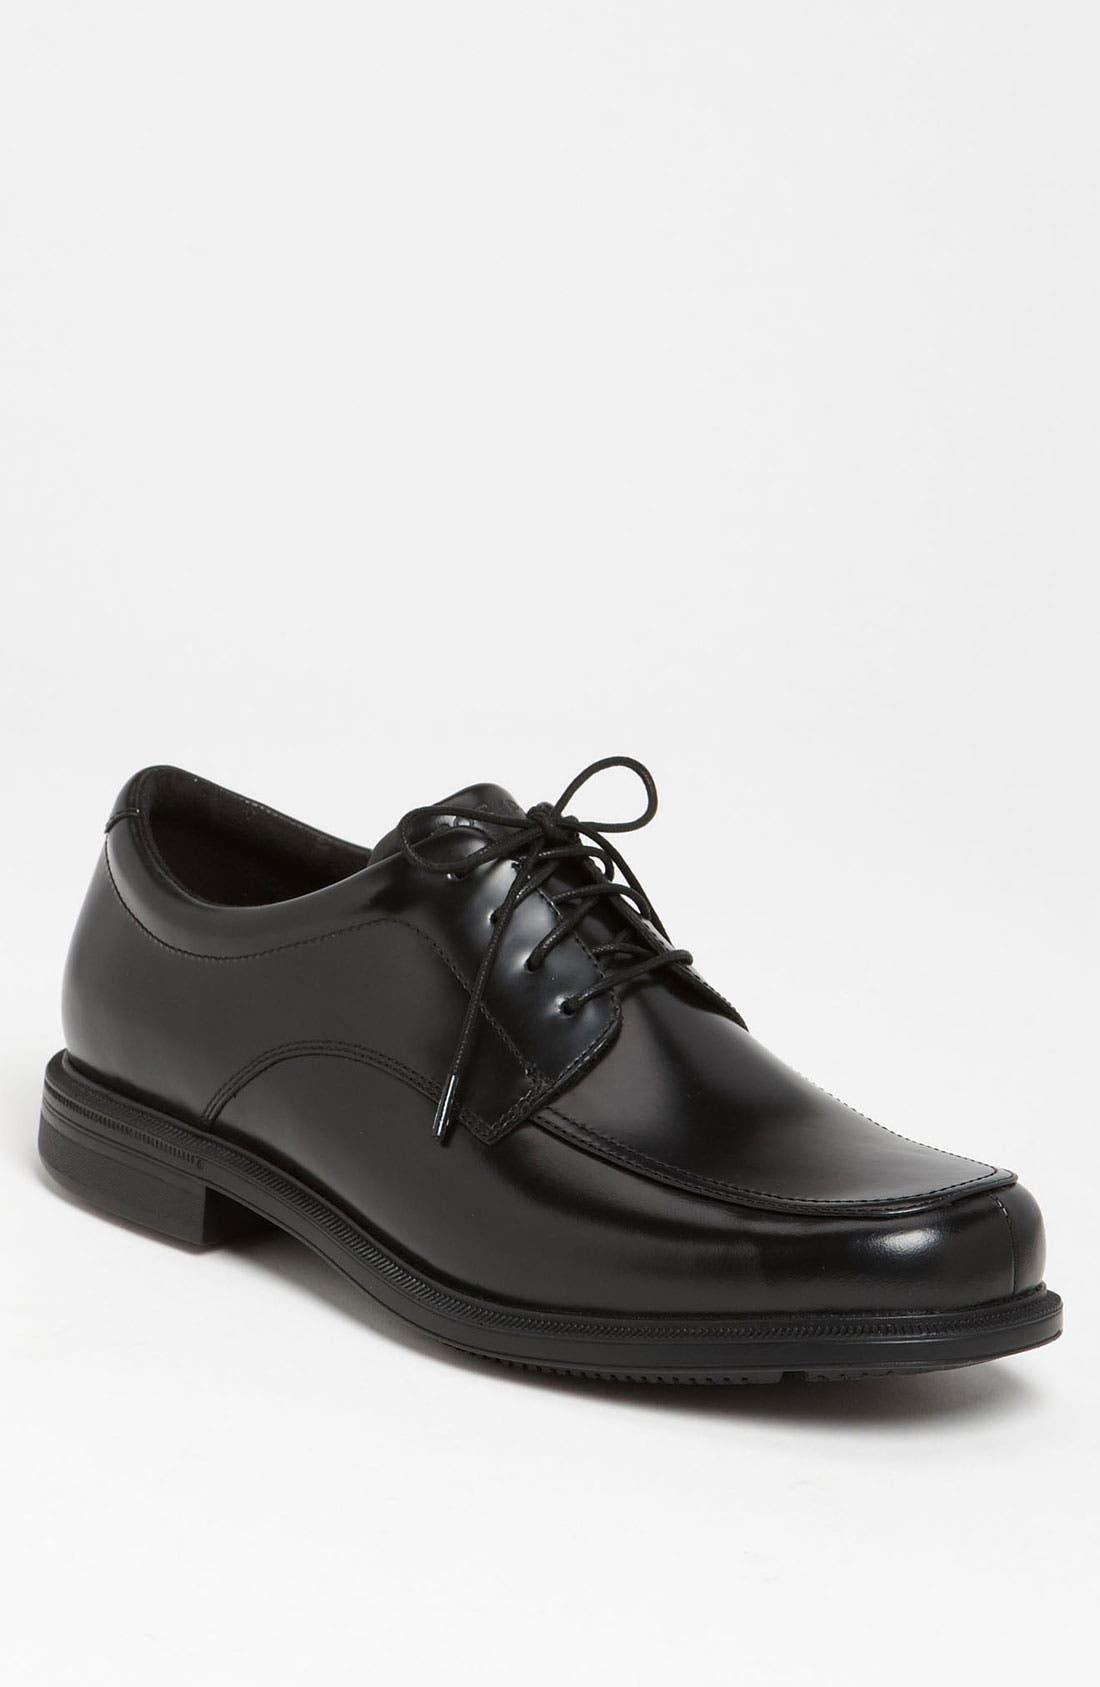 Alternate Image 1 Selected - Rockport 'Editorial Offices' Apron Toe Oxford (Online Only)